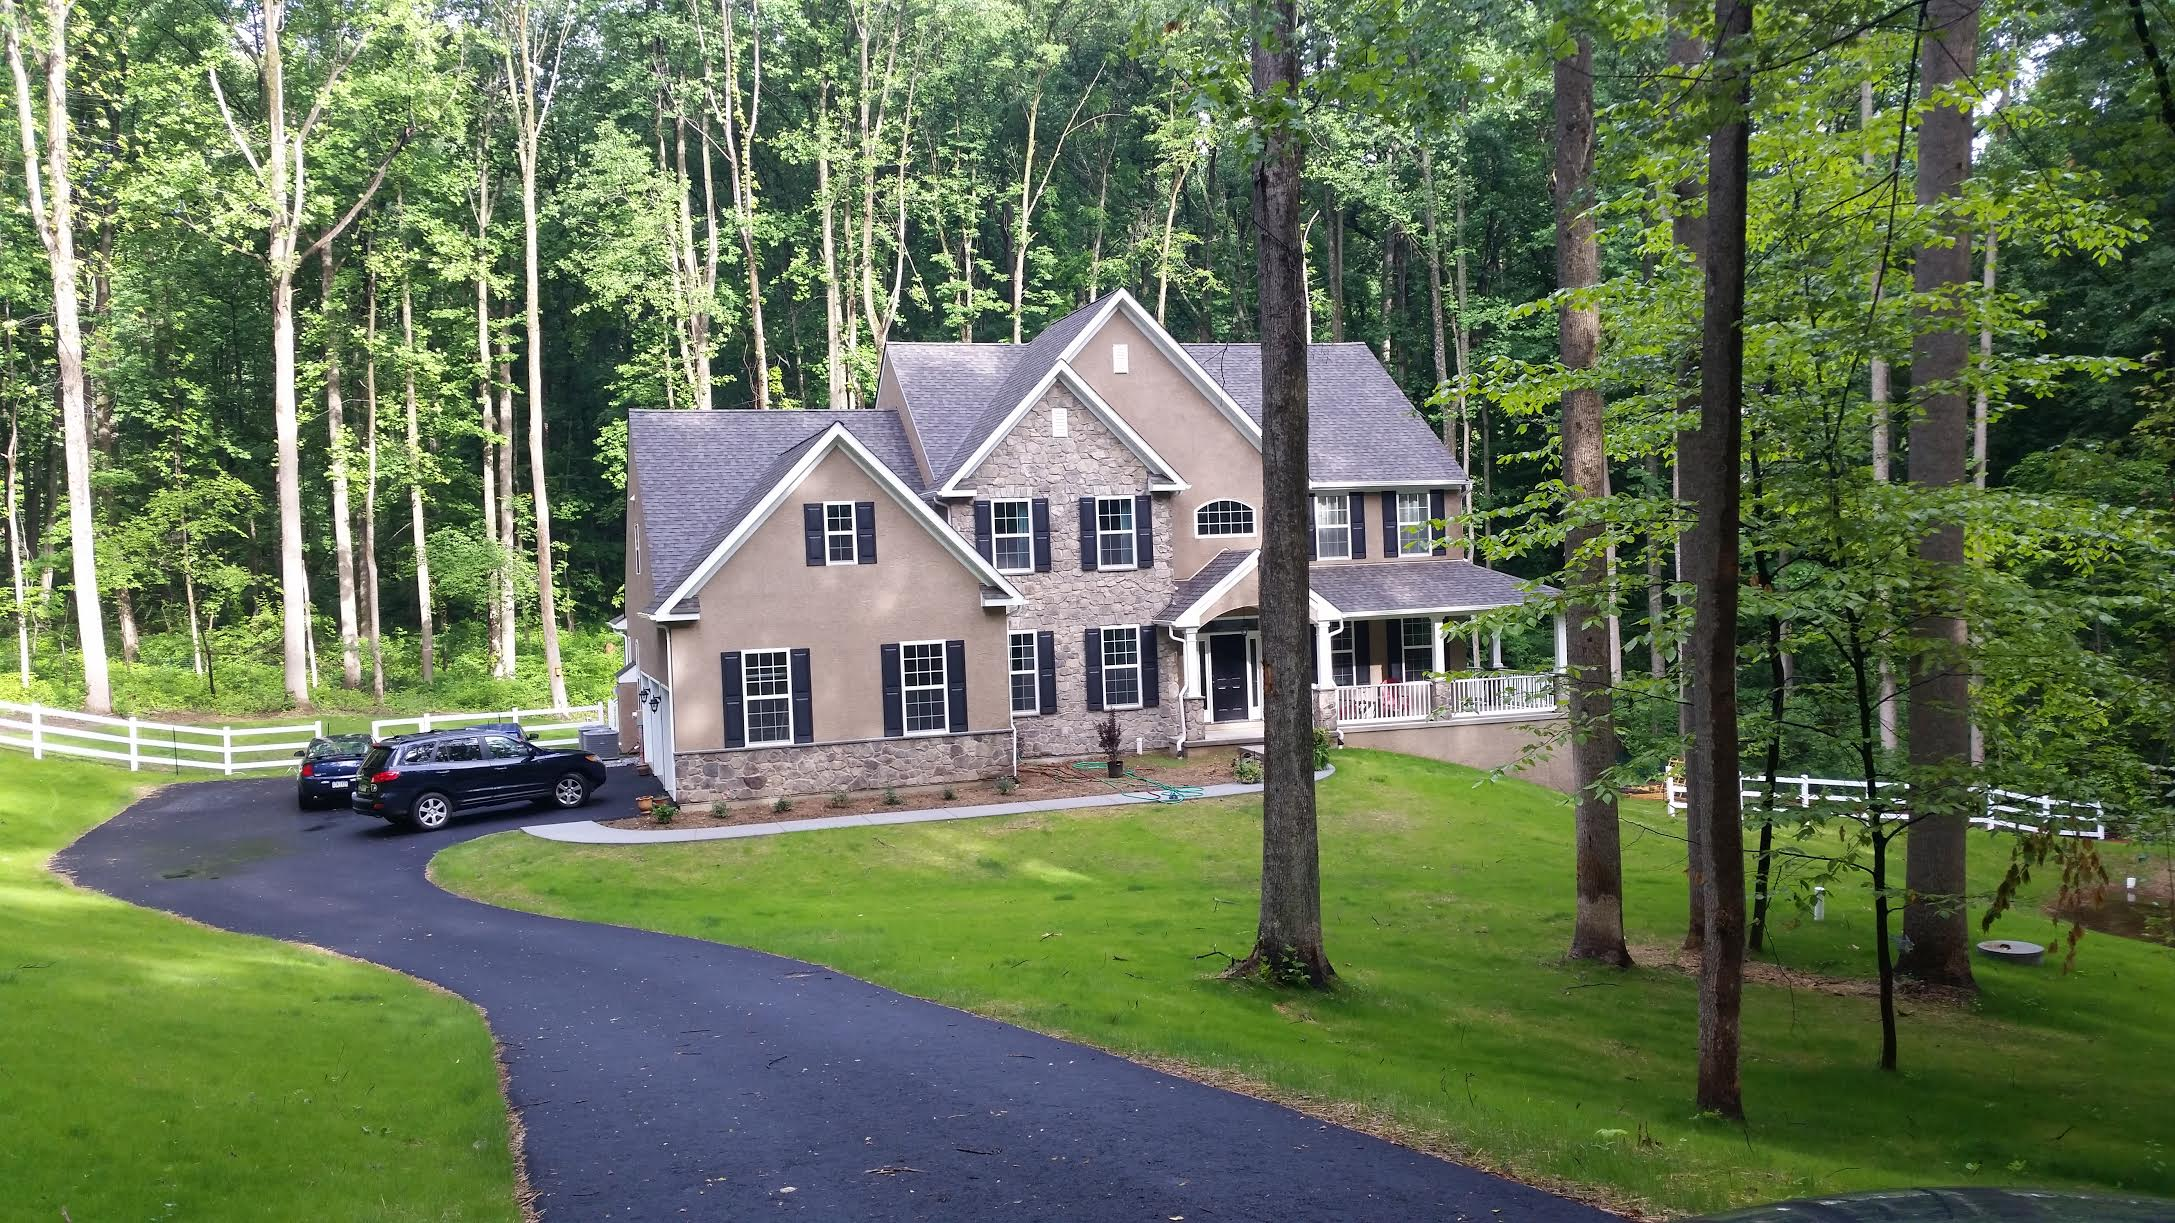 Larry has a beautiful home and property, and subtly defined borders with our 3-rail vinyl fence.